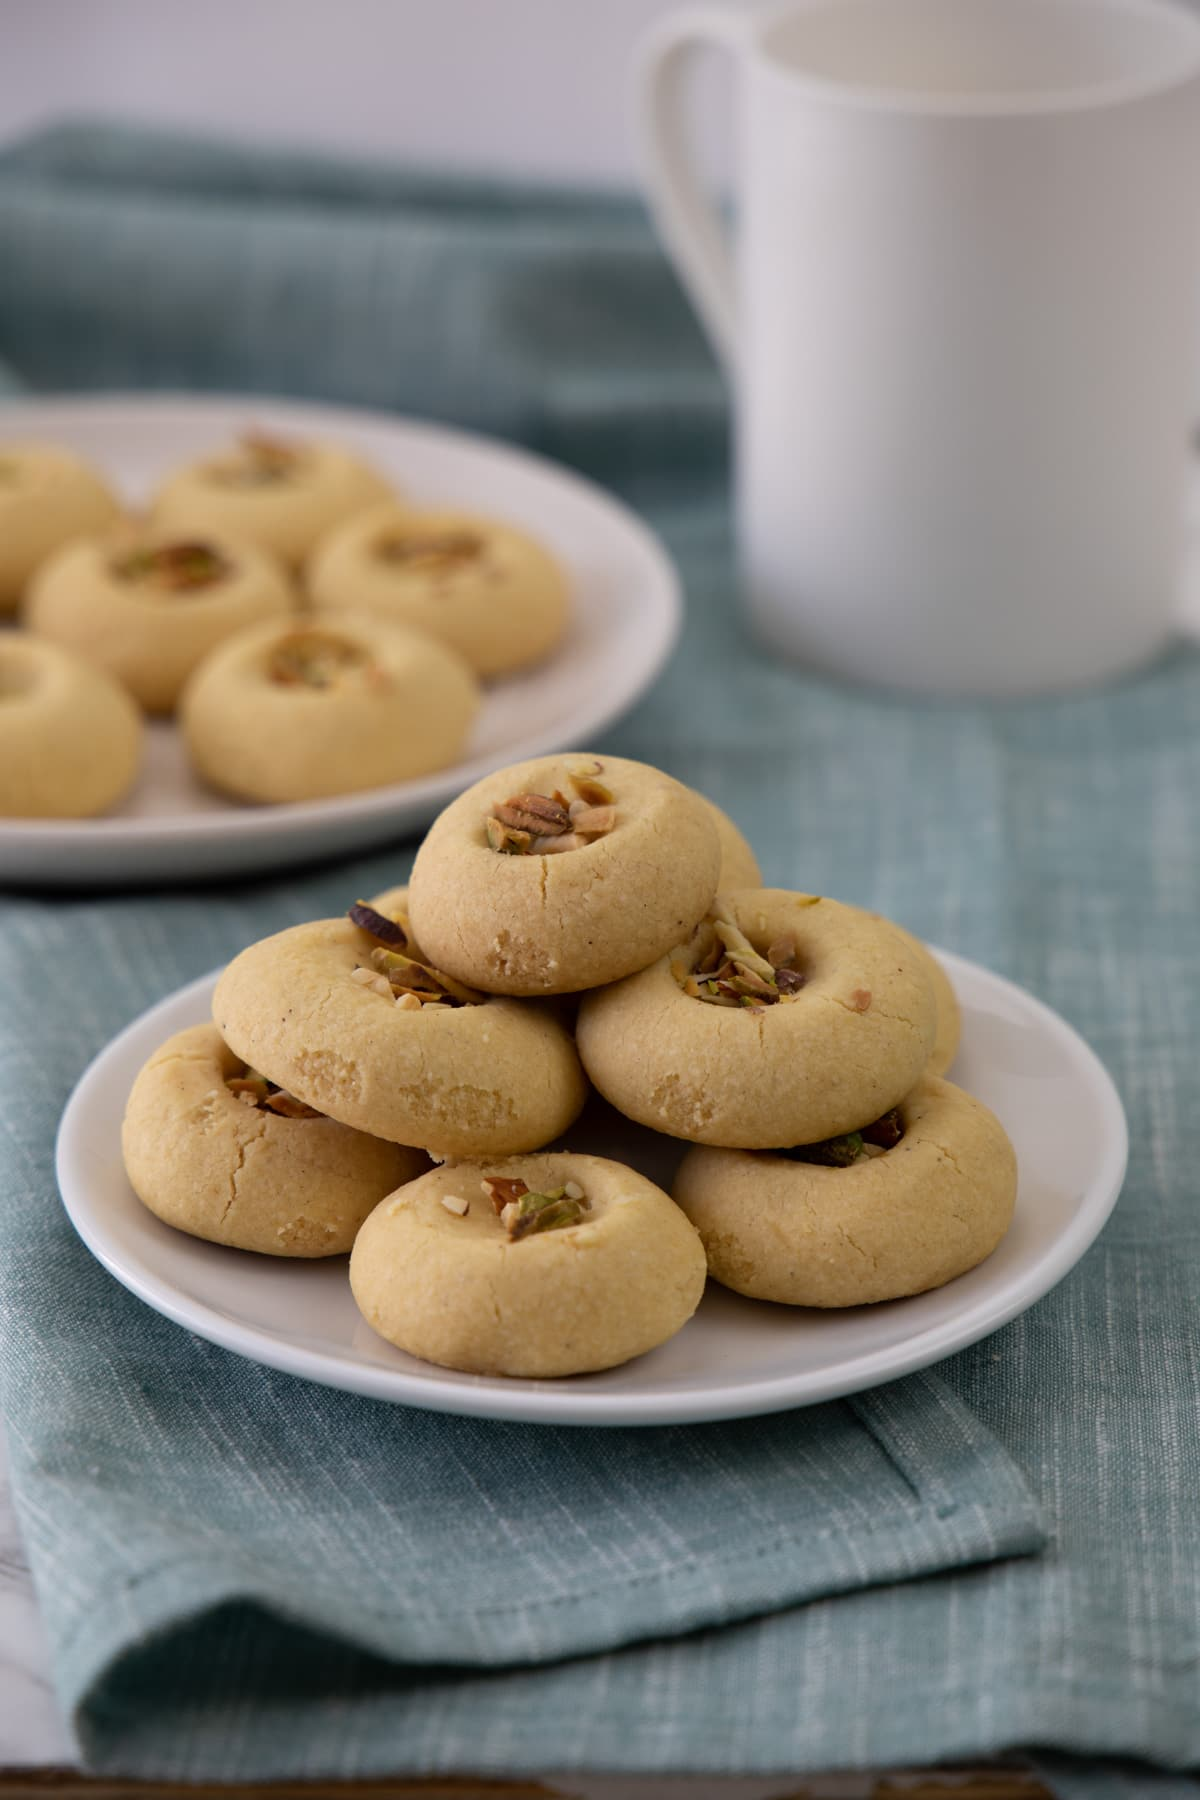 A stack of nankhatai cookies in a plate, few more in background with a cup of coffee.